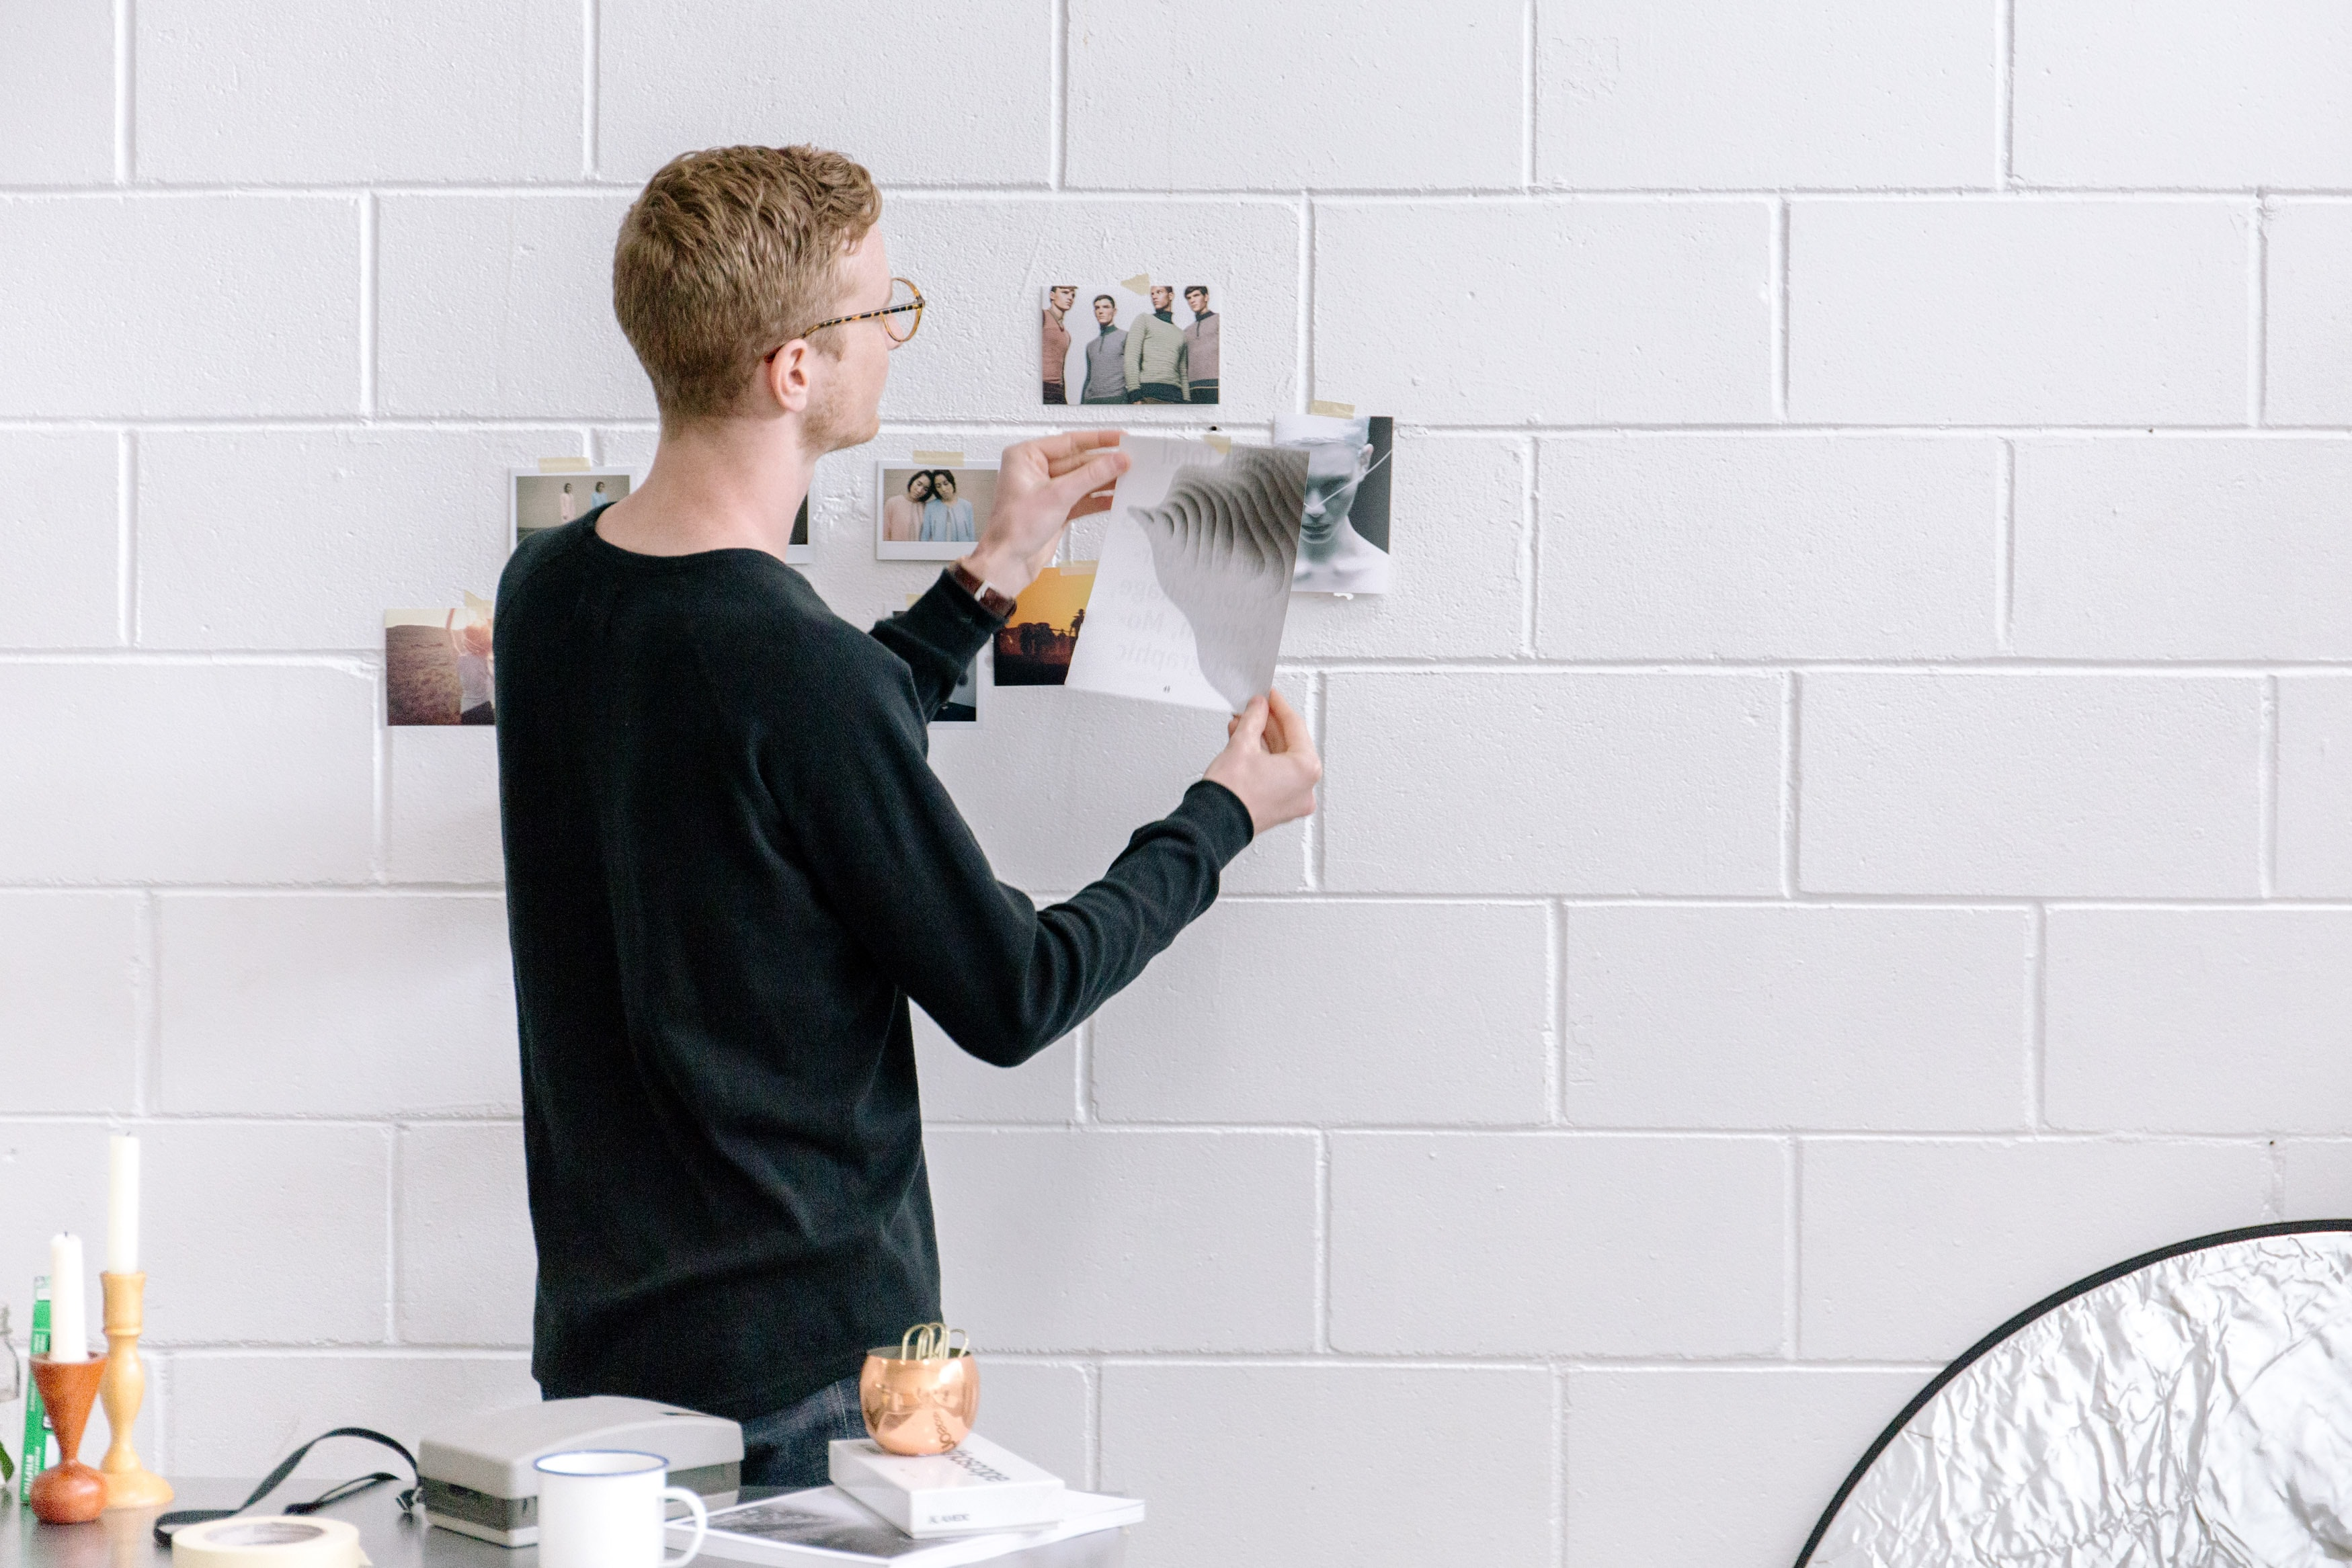 A young man hanging photos on a white wall